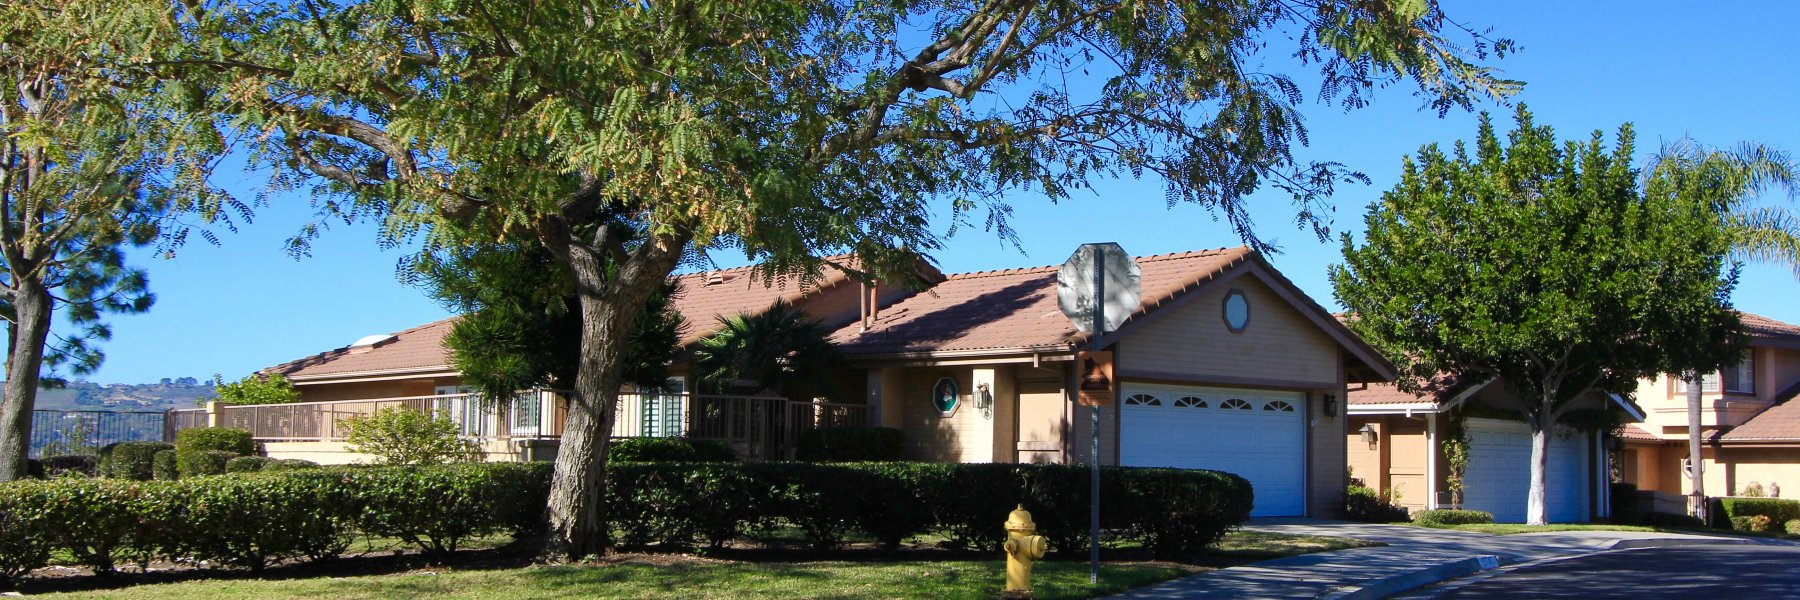 Loma Vista is a community of homes in San Juan Capistrano California